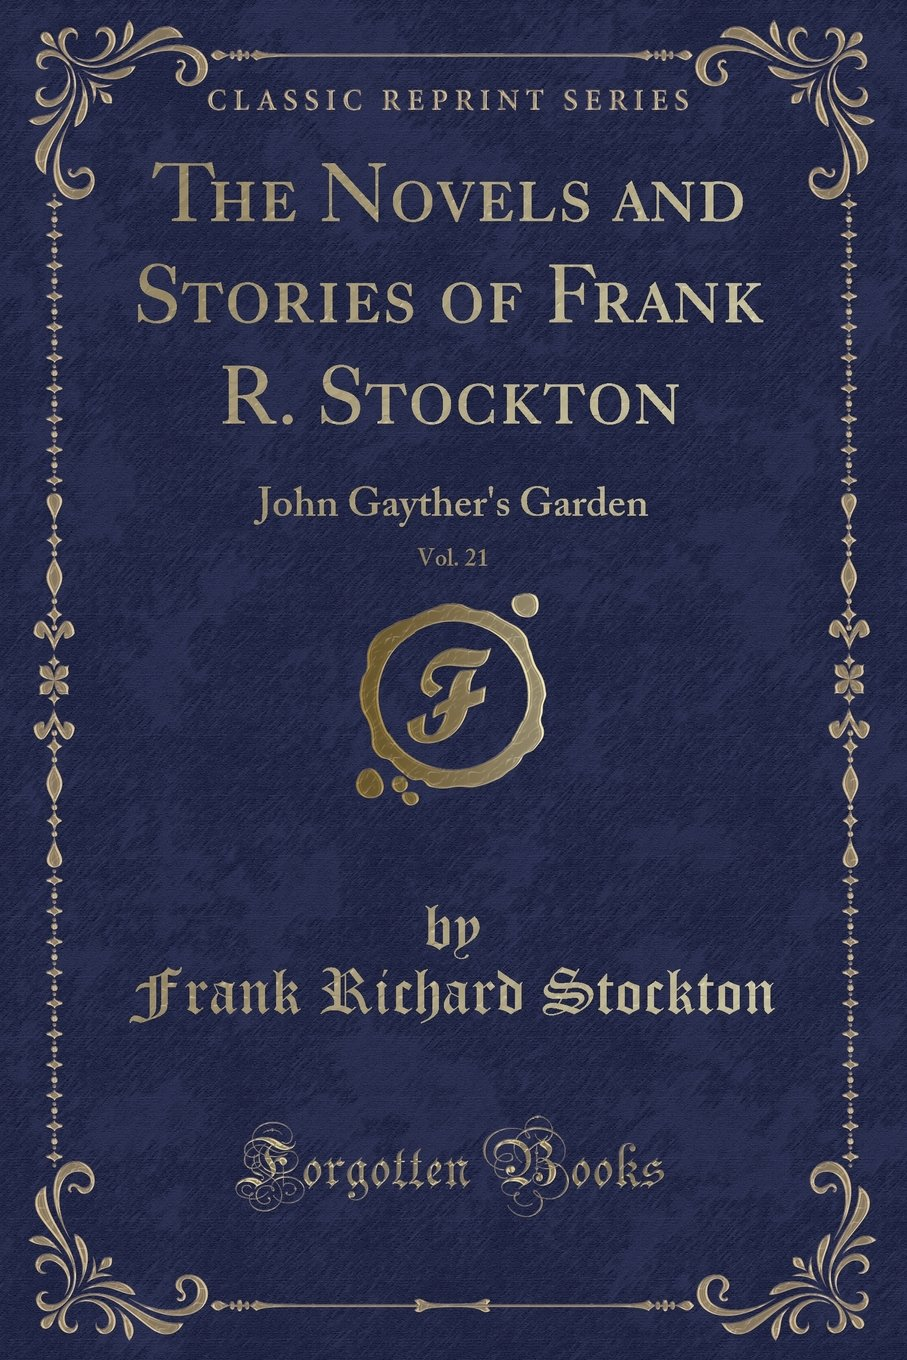 Read Online The Novels and Stories of Frank R. Stockton, Vol. 21: John Gayther's Garden (Classic Reprint) PDF